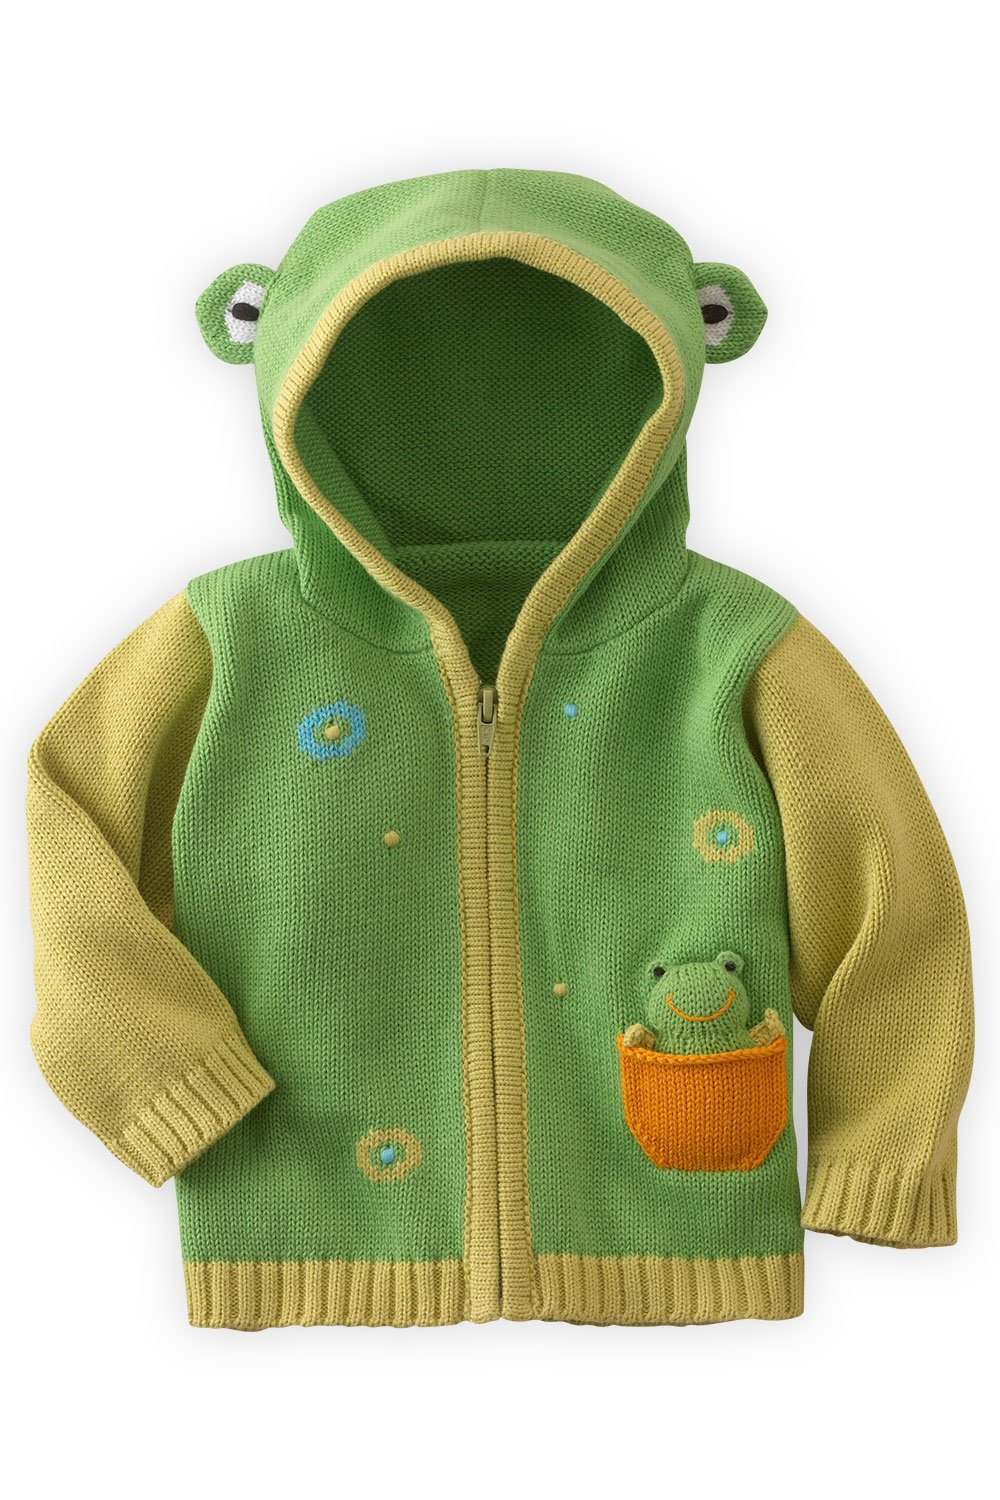 Joobles Organic Baby Cardigan Sweater - Flop The Frog (12-18 Mos) Green by Joobles